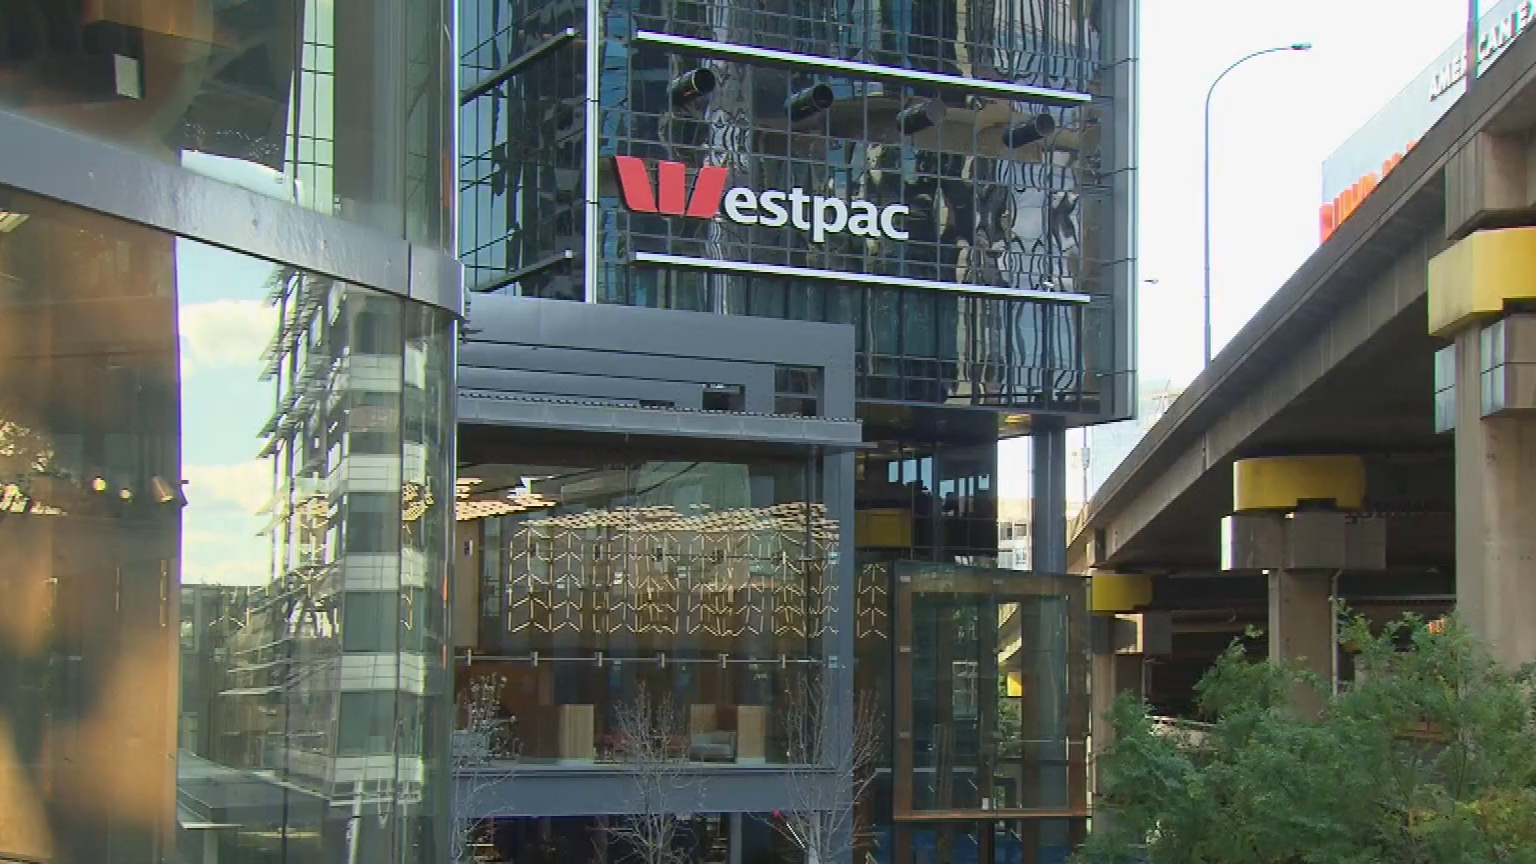 Westpac announces lowest fixed rate home loan in market